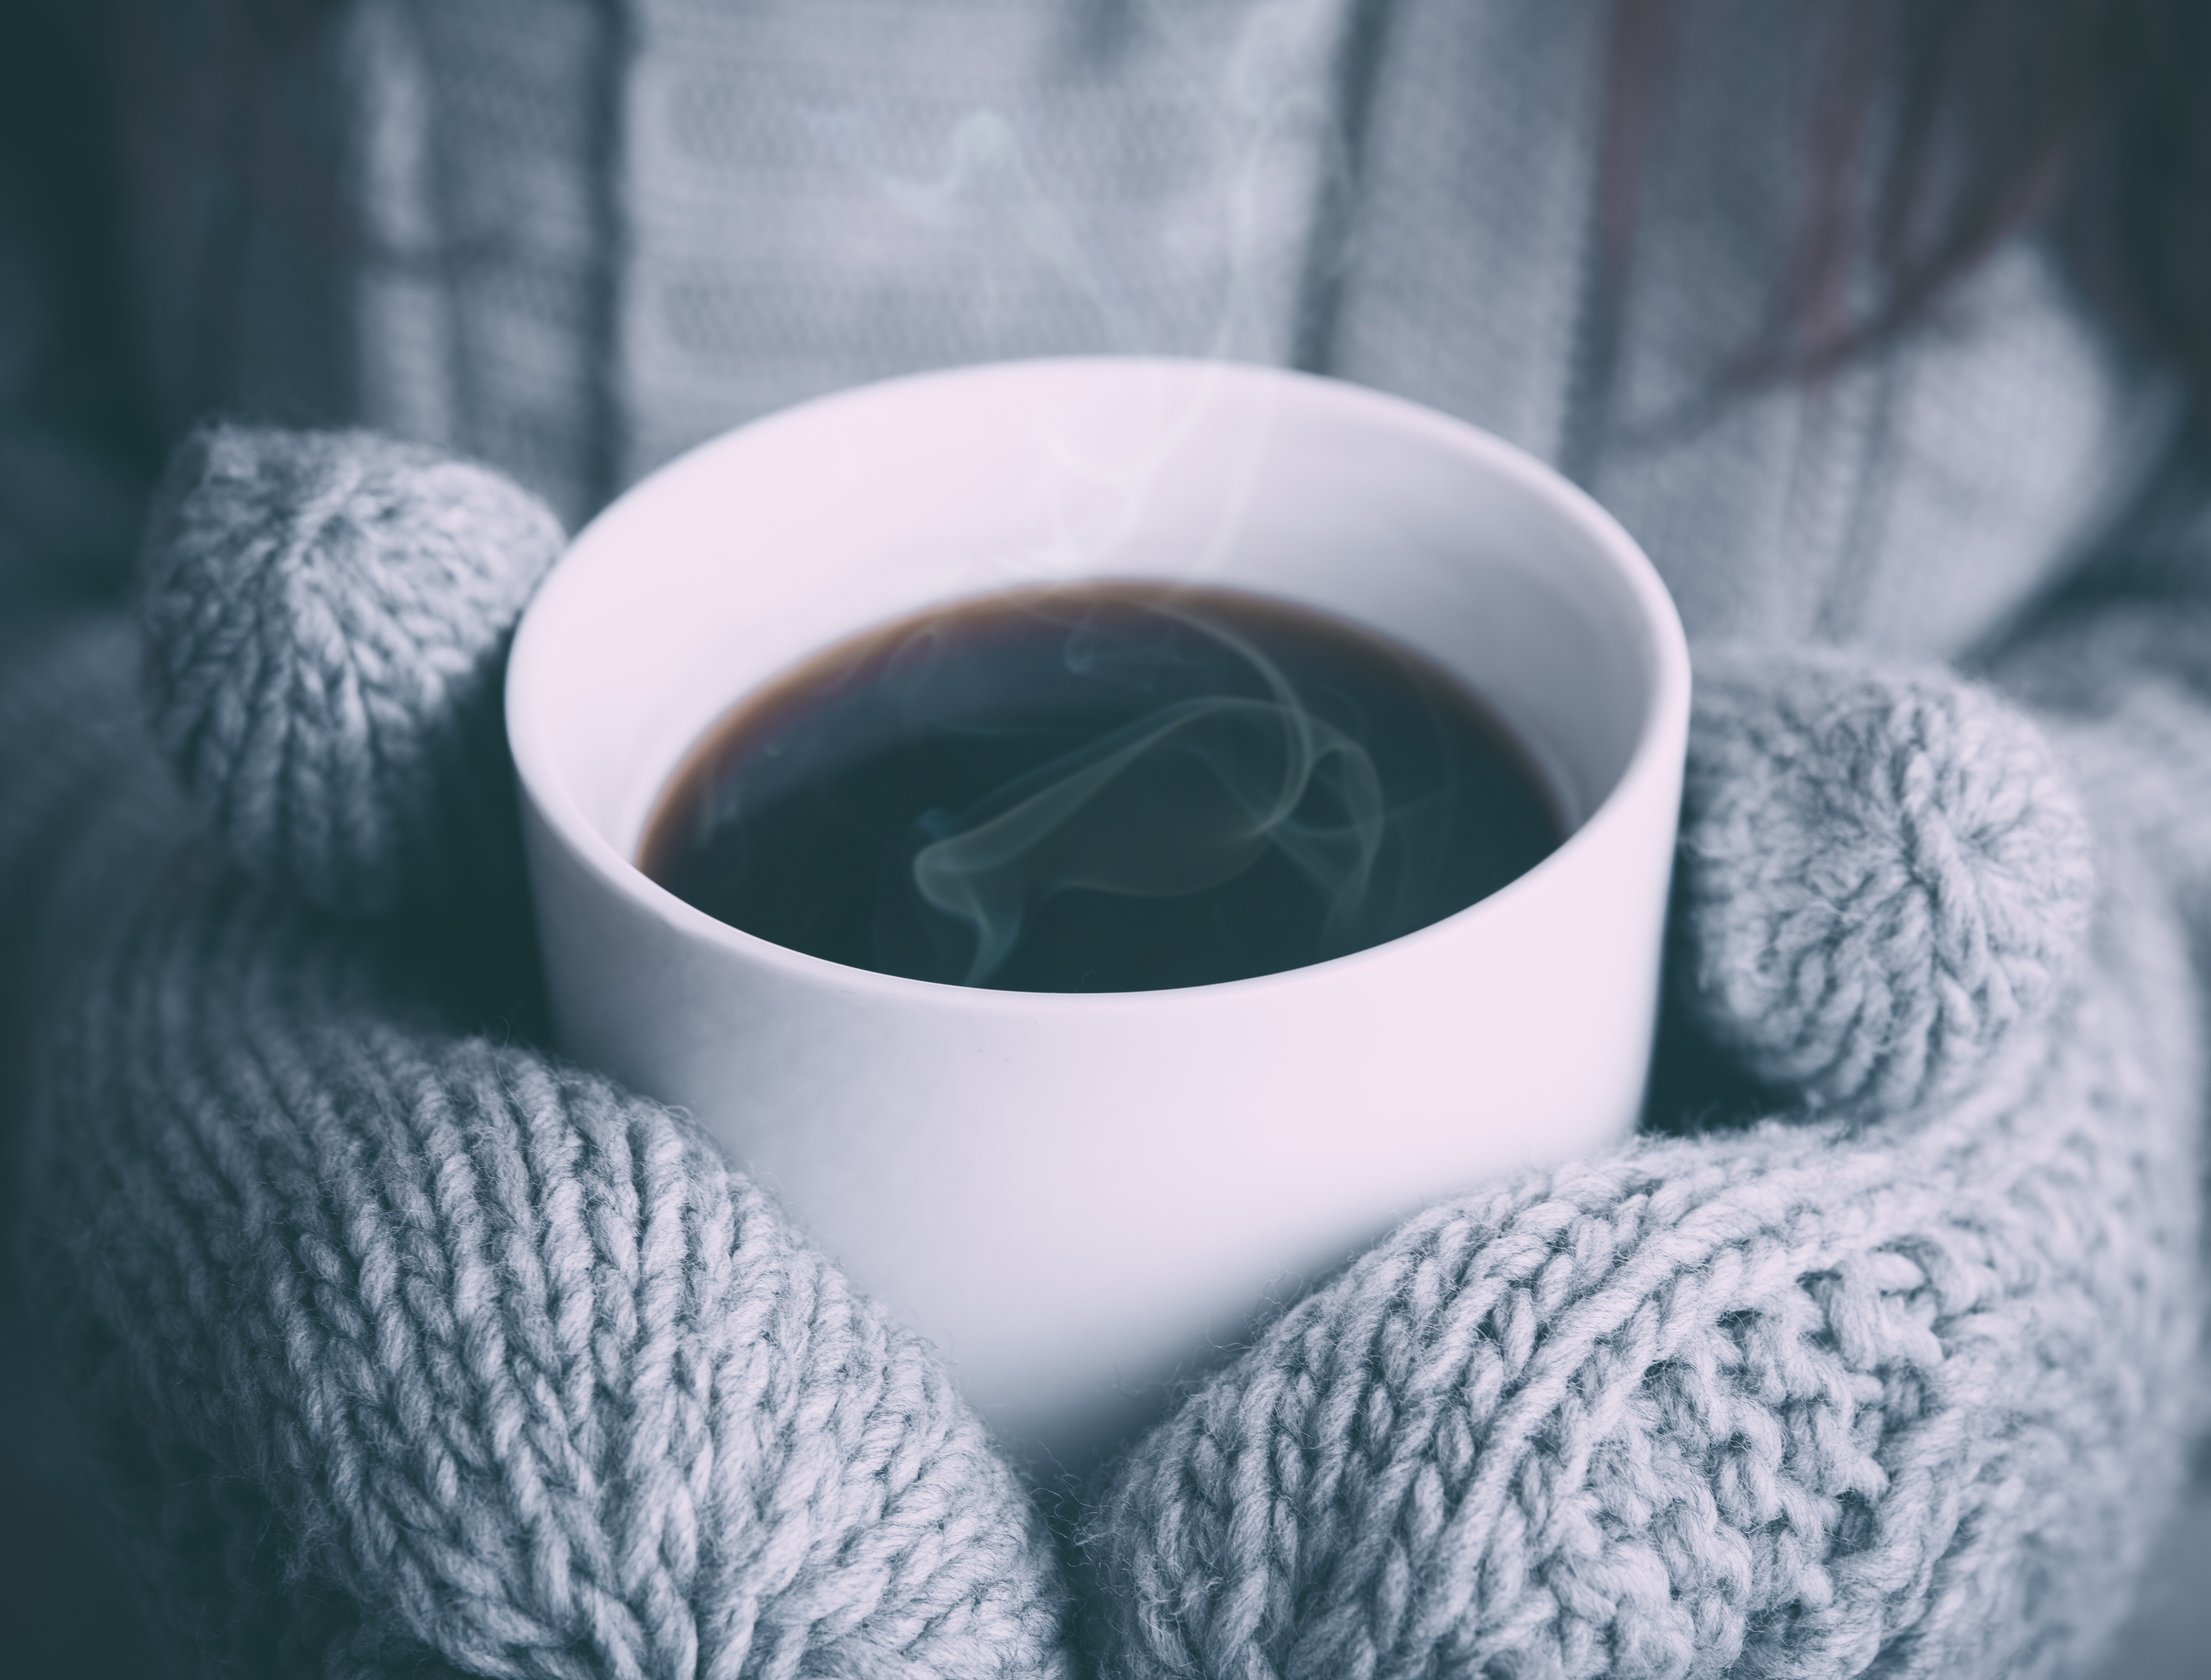 Conscious Beauty and Well-Being: Caring for the Body During 'Major Cold'